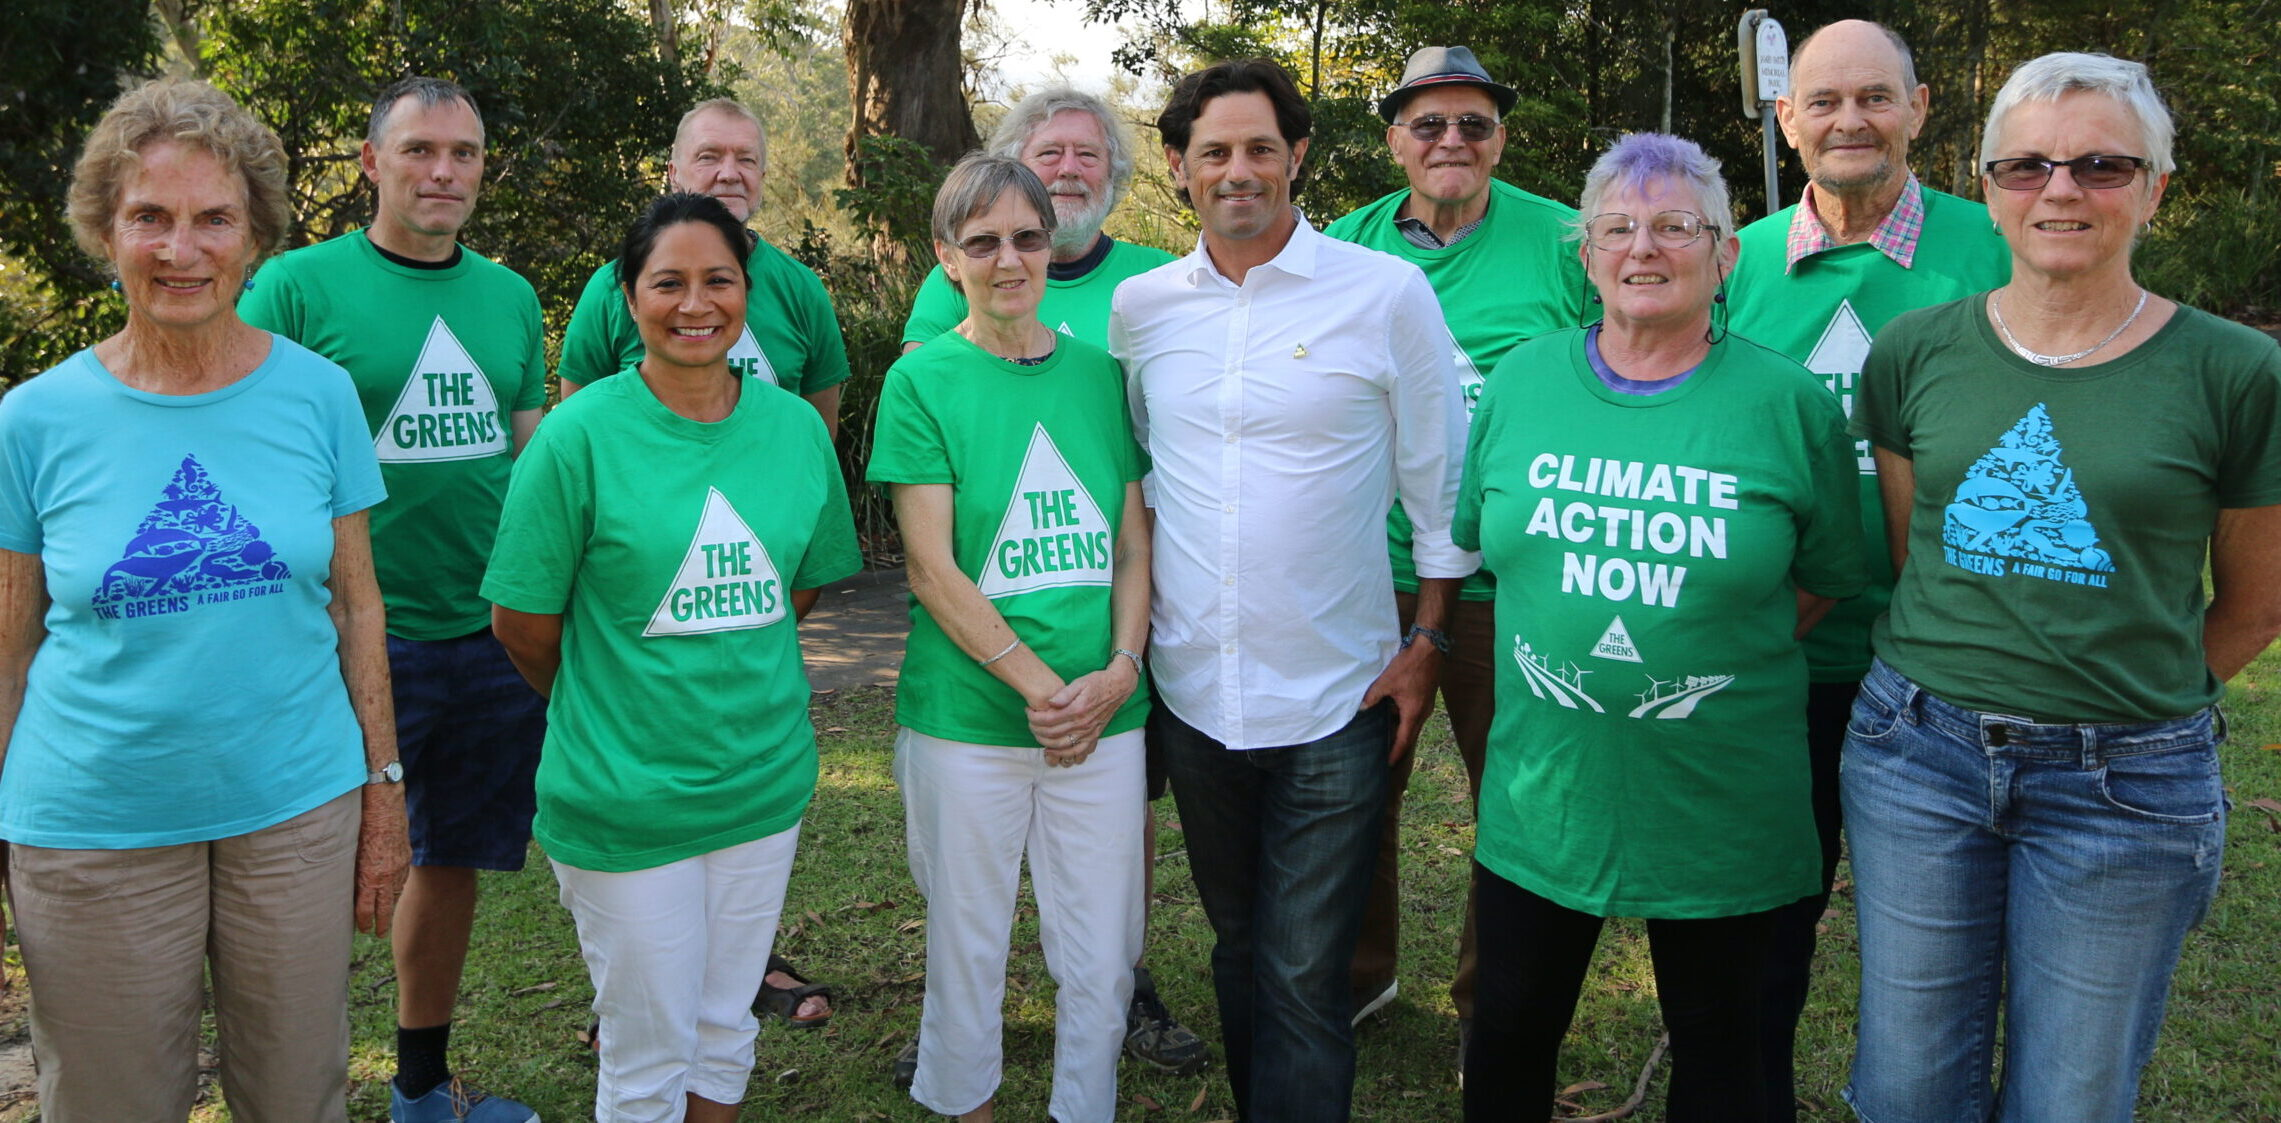 Coffs Harbour Greens Office Bearers and Supporters 2020